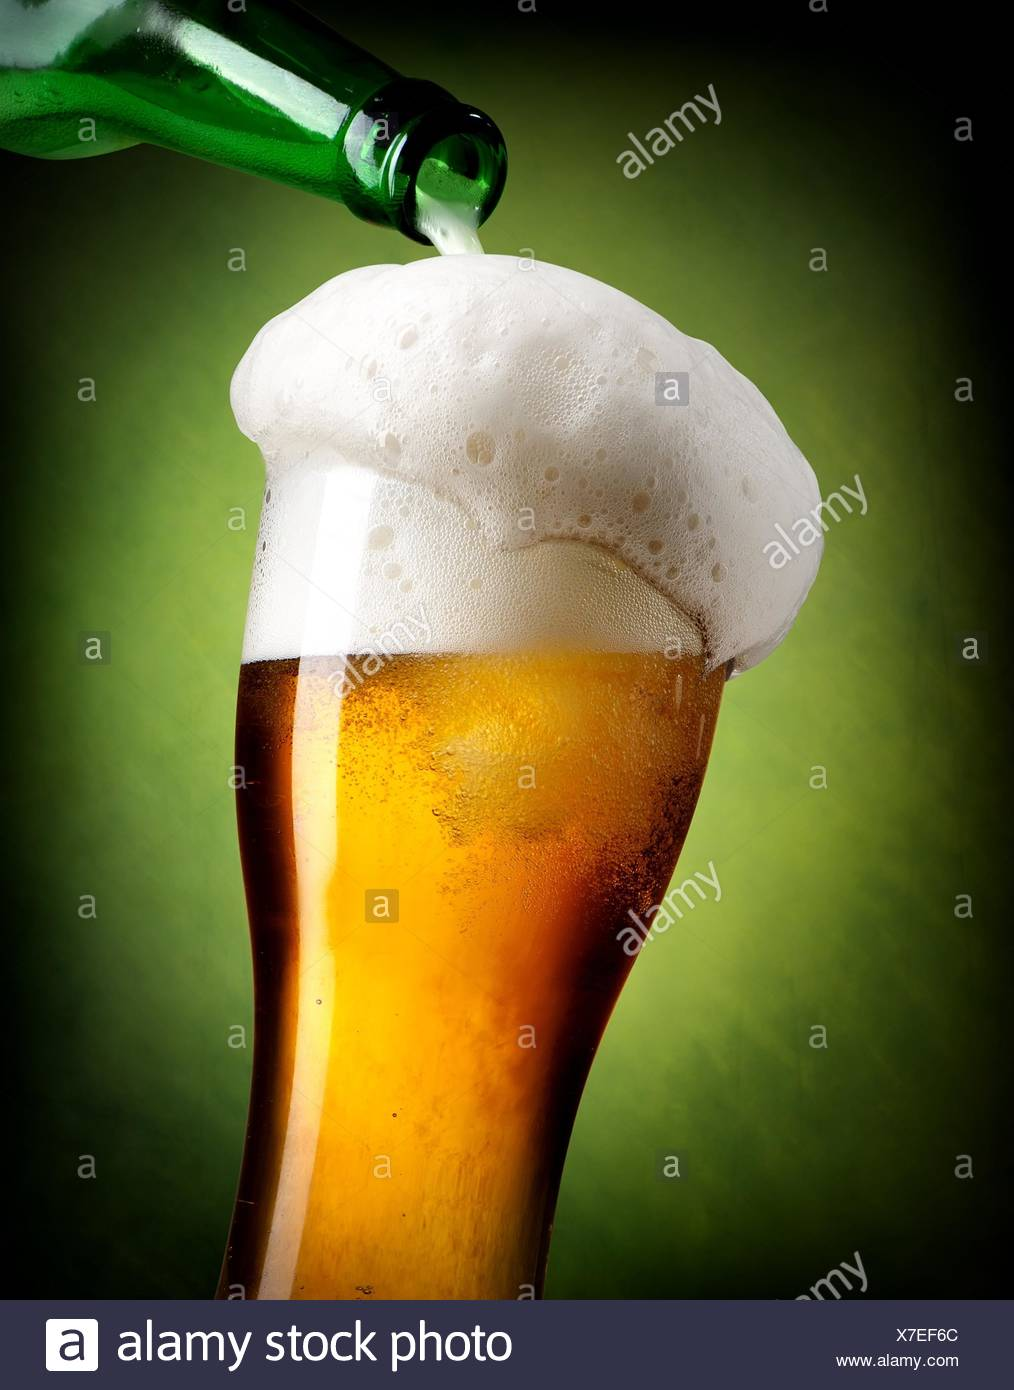 beer pouring into glass on green background stock photo 279987748